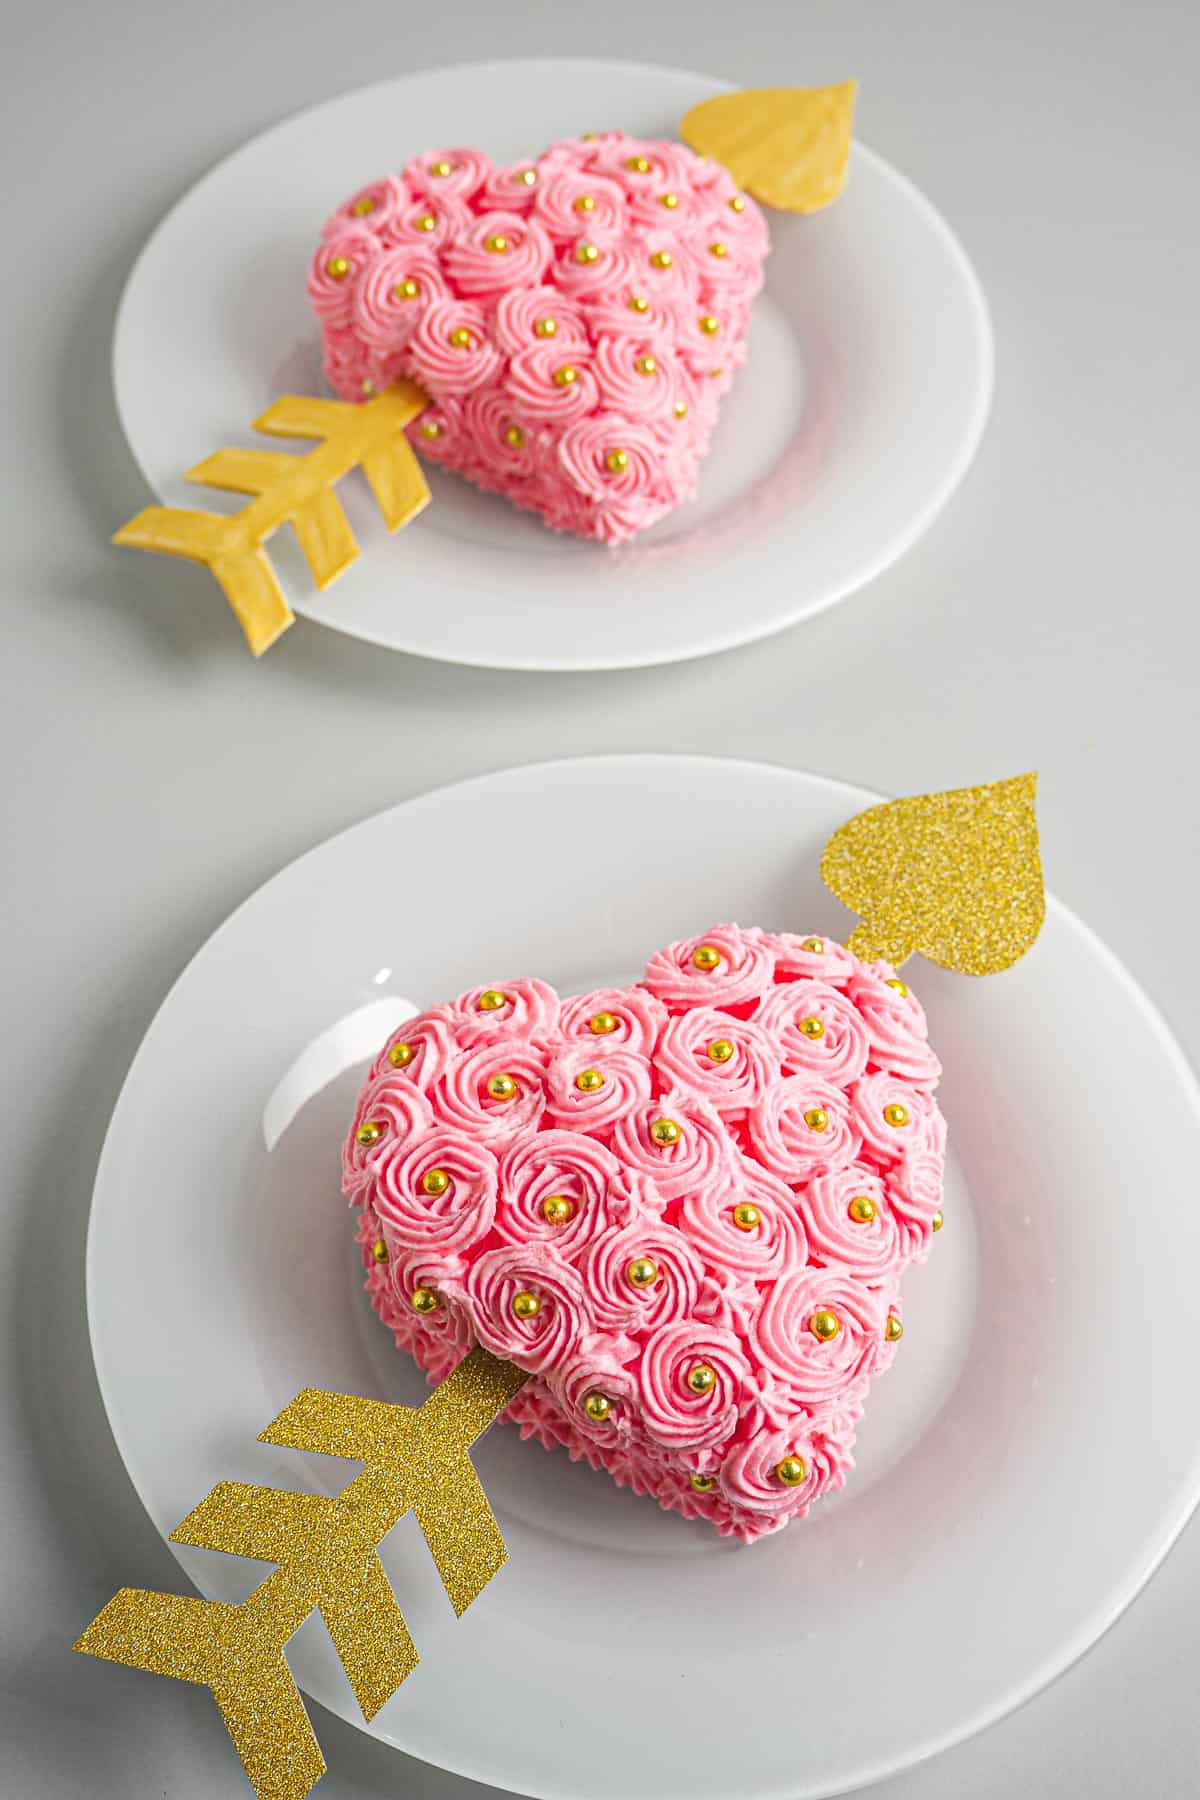 A pink buttercream rossette frosted heart shaped cake with a gold paper arrow through it.